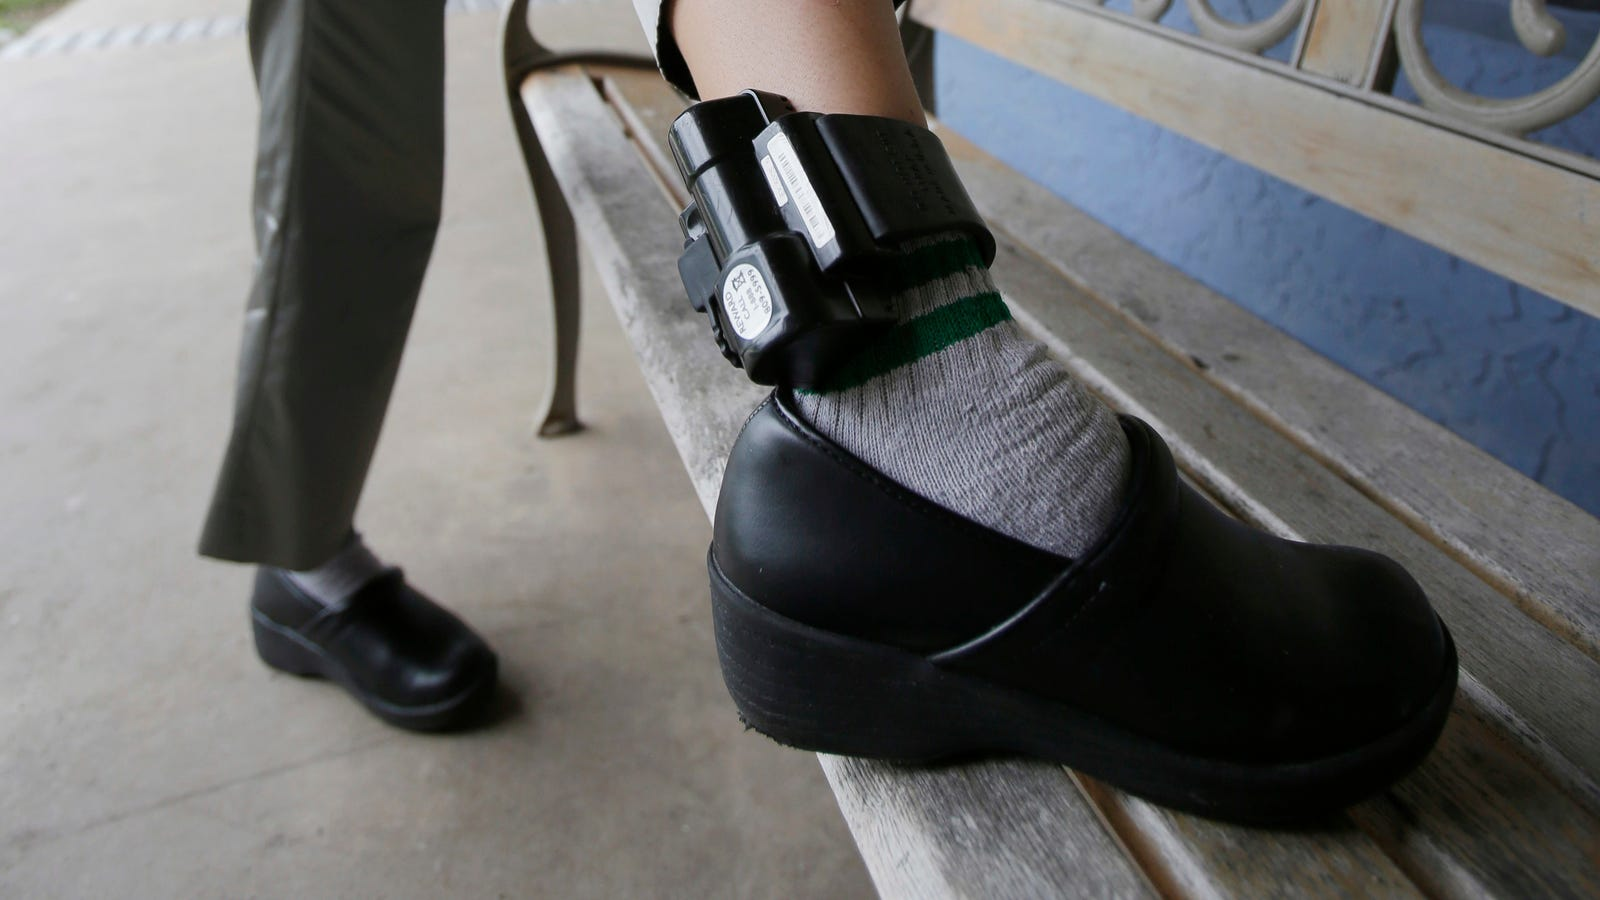 Software Application Update Triggered Hundreds of Cops Ankle Displays to Go Dark thumbnail